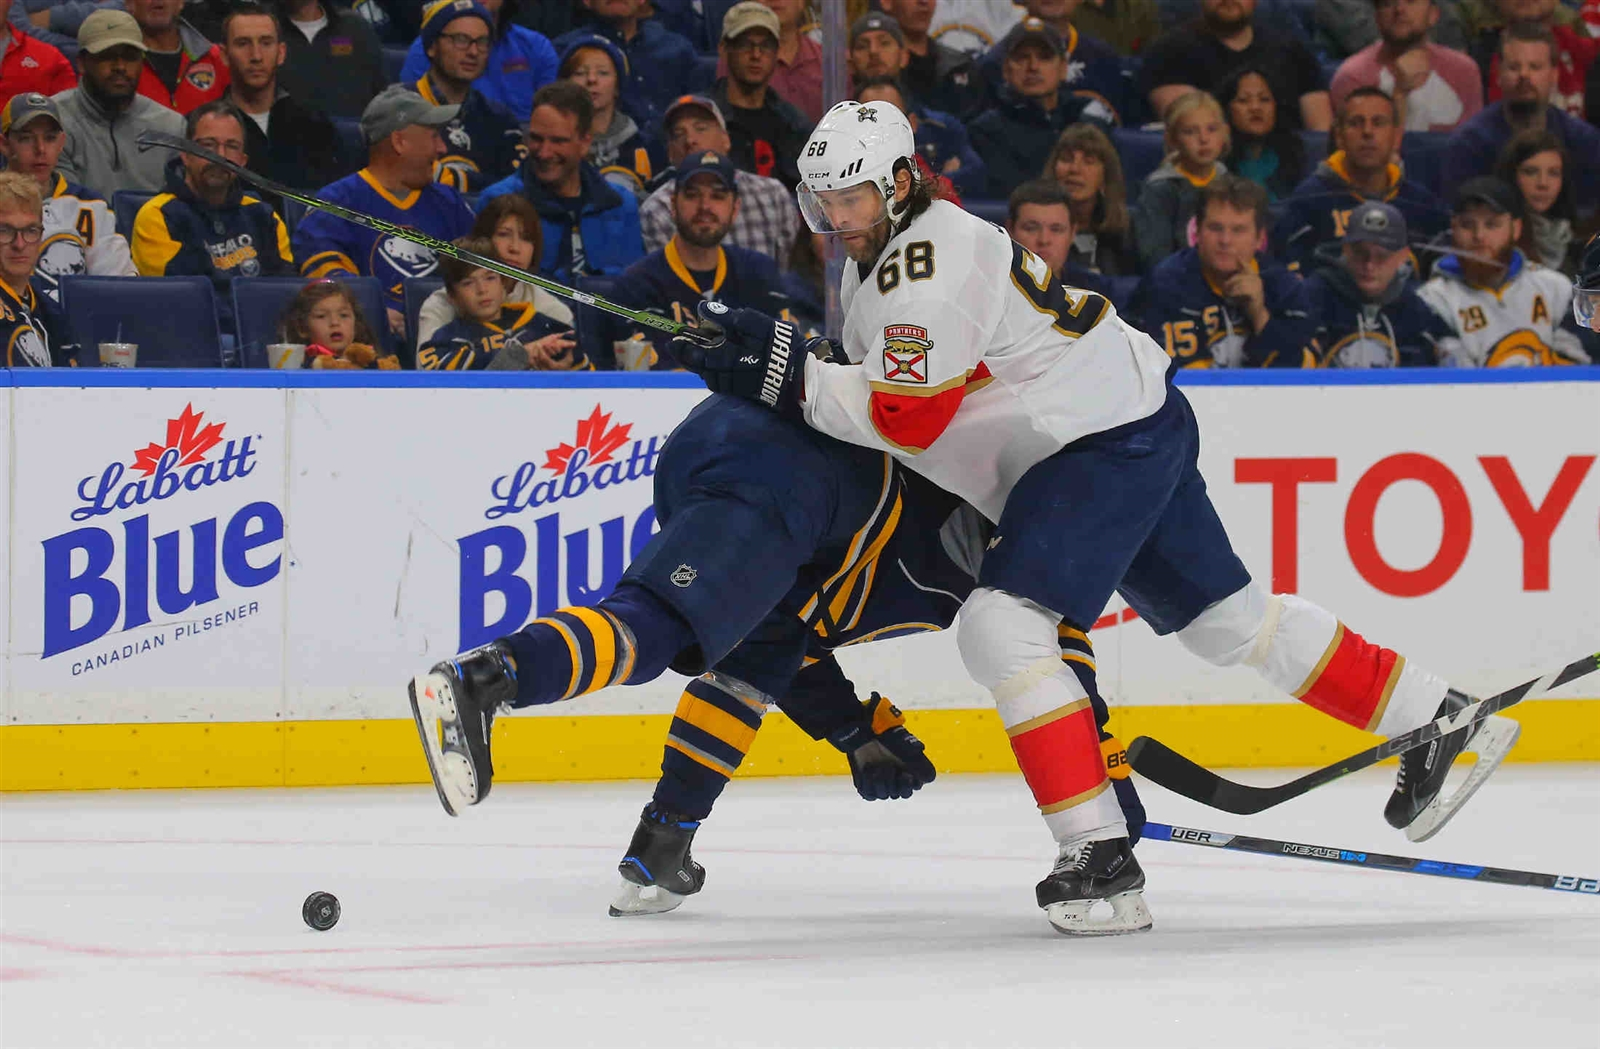 Jaromir Jagr battles Dmitry Kulikov during the Sabres' 3-0 win over the Panthers on Oct. 29 (John Hickey/Buffalo News).